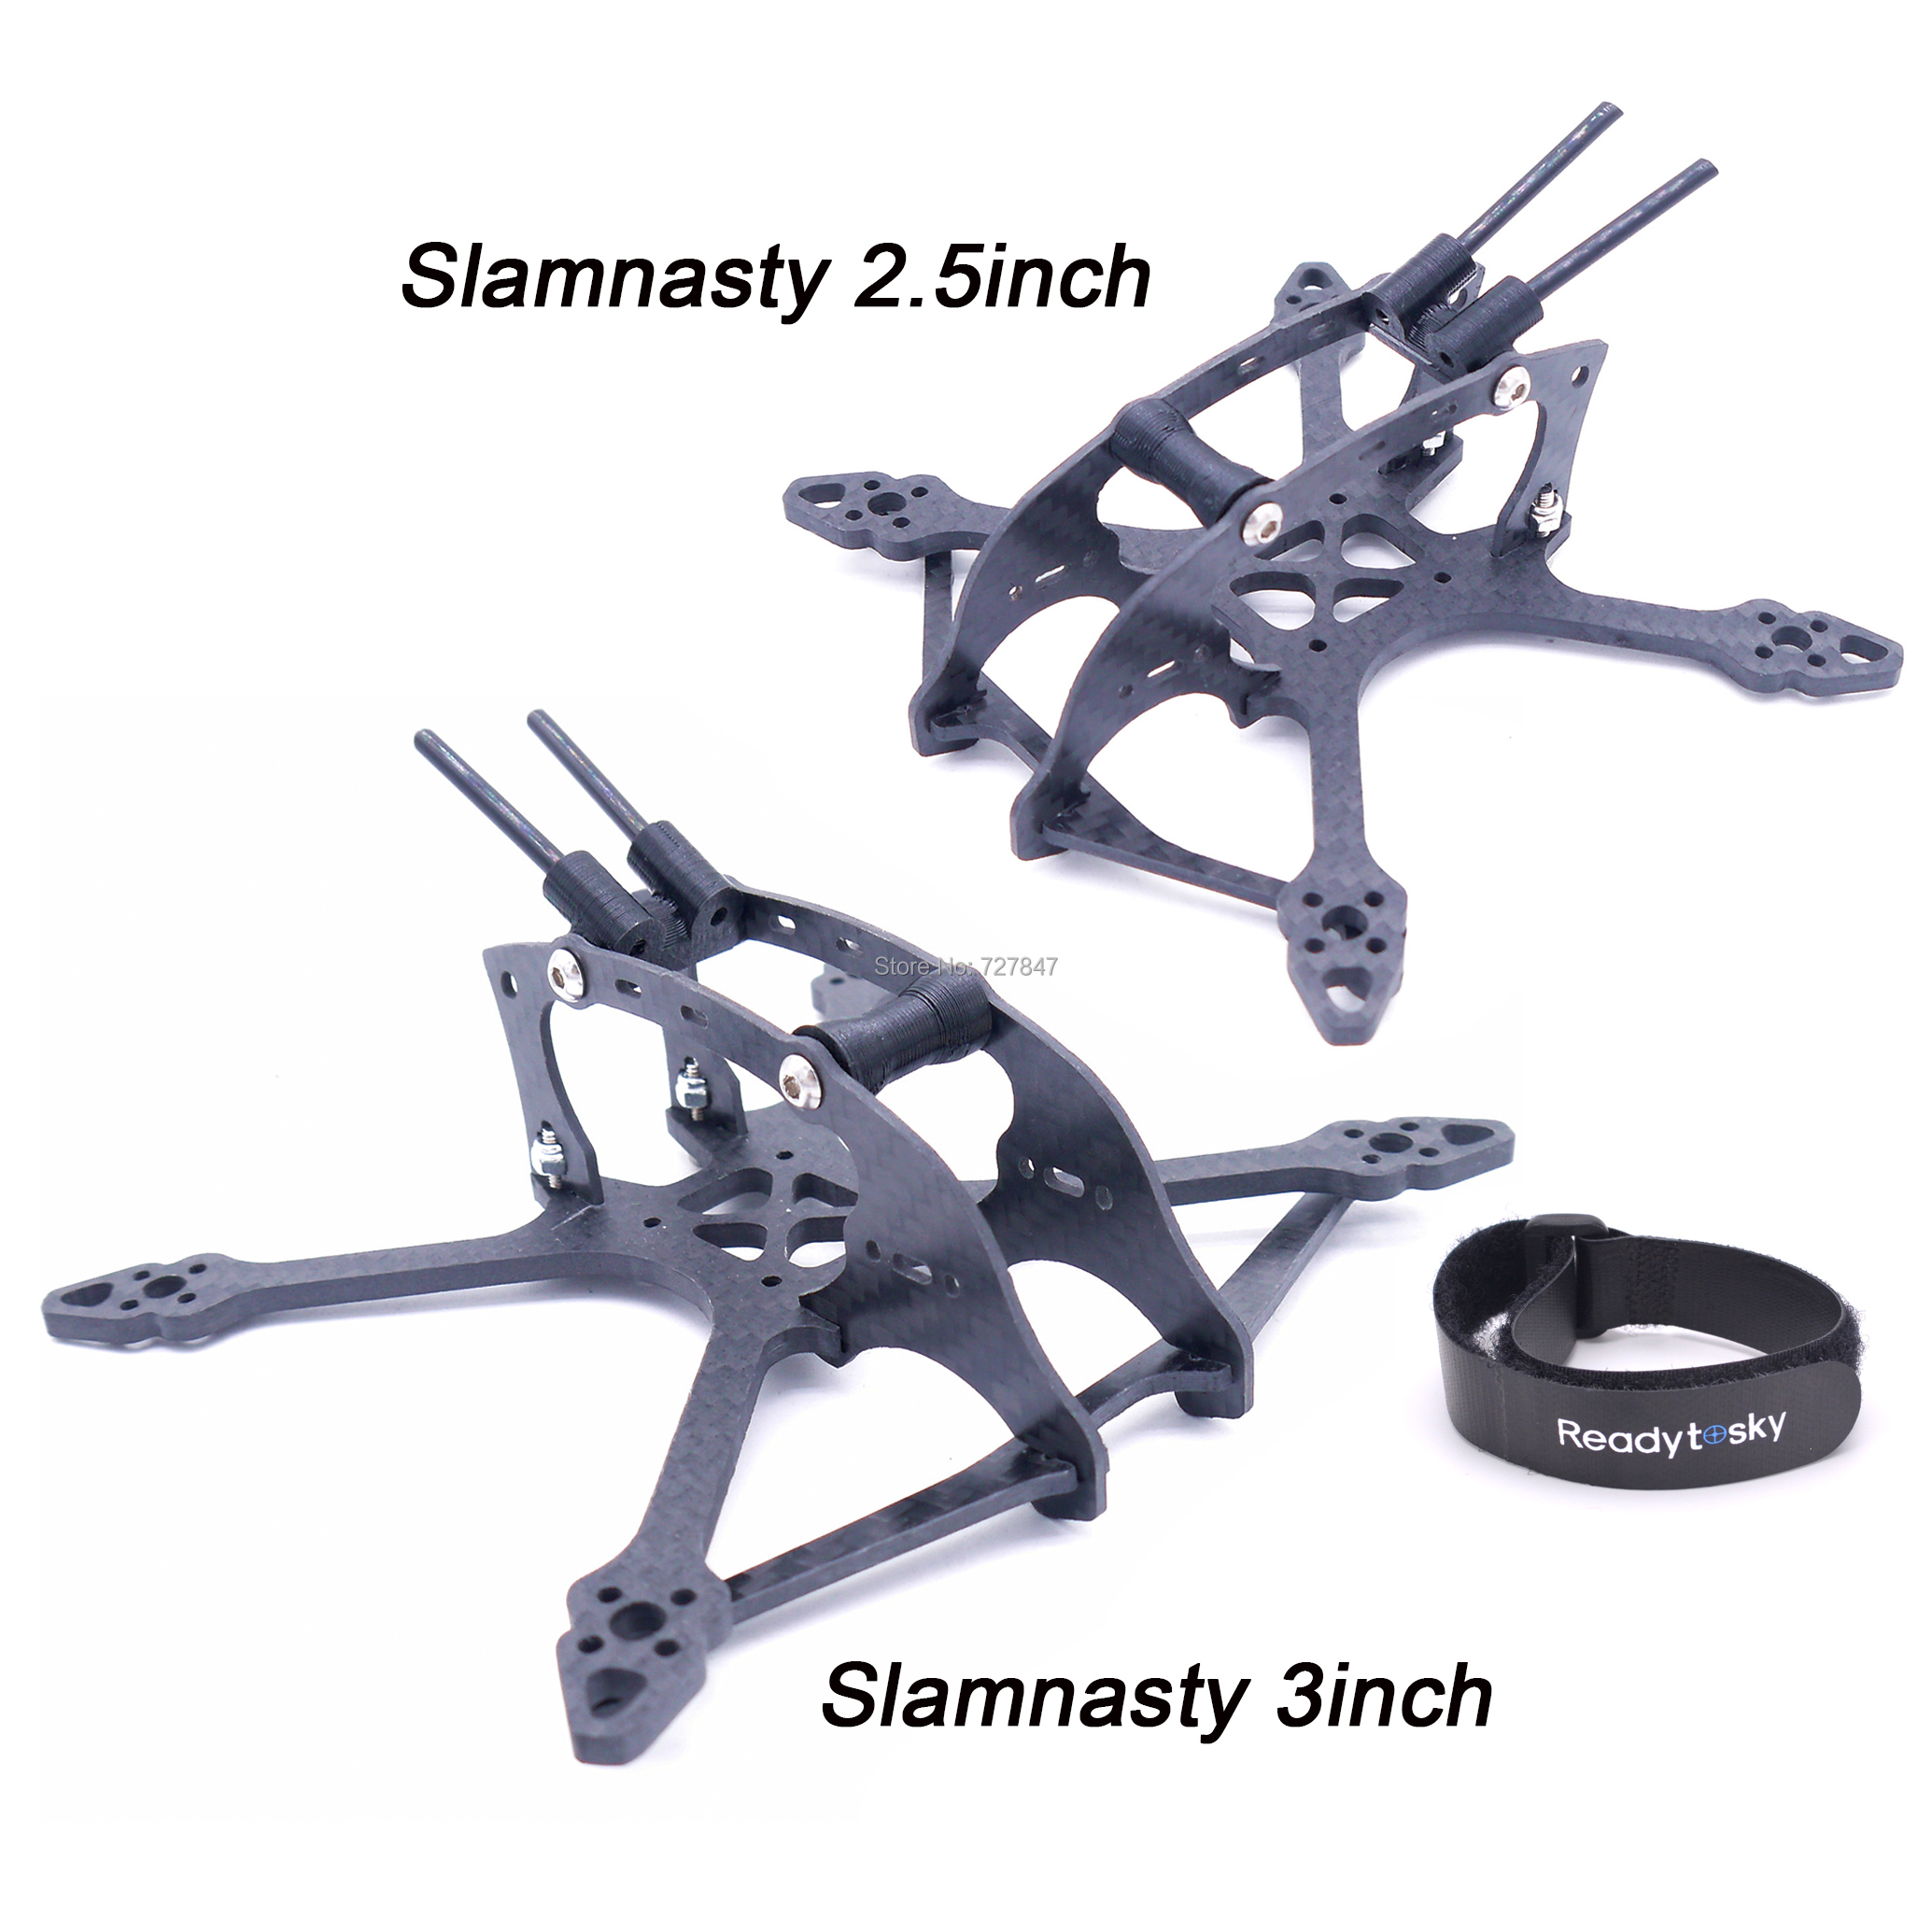 Slamnasty 2.5inch 115mm / 3inch 135mm Wheelbase X Type Pure Carbon Fiber Quadcopter Frame For FPV Racing Drone